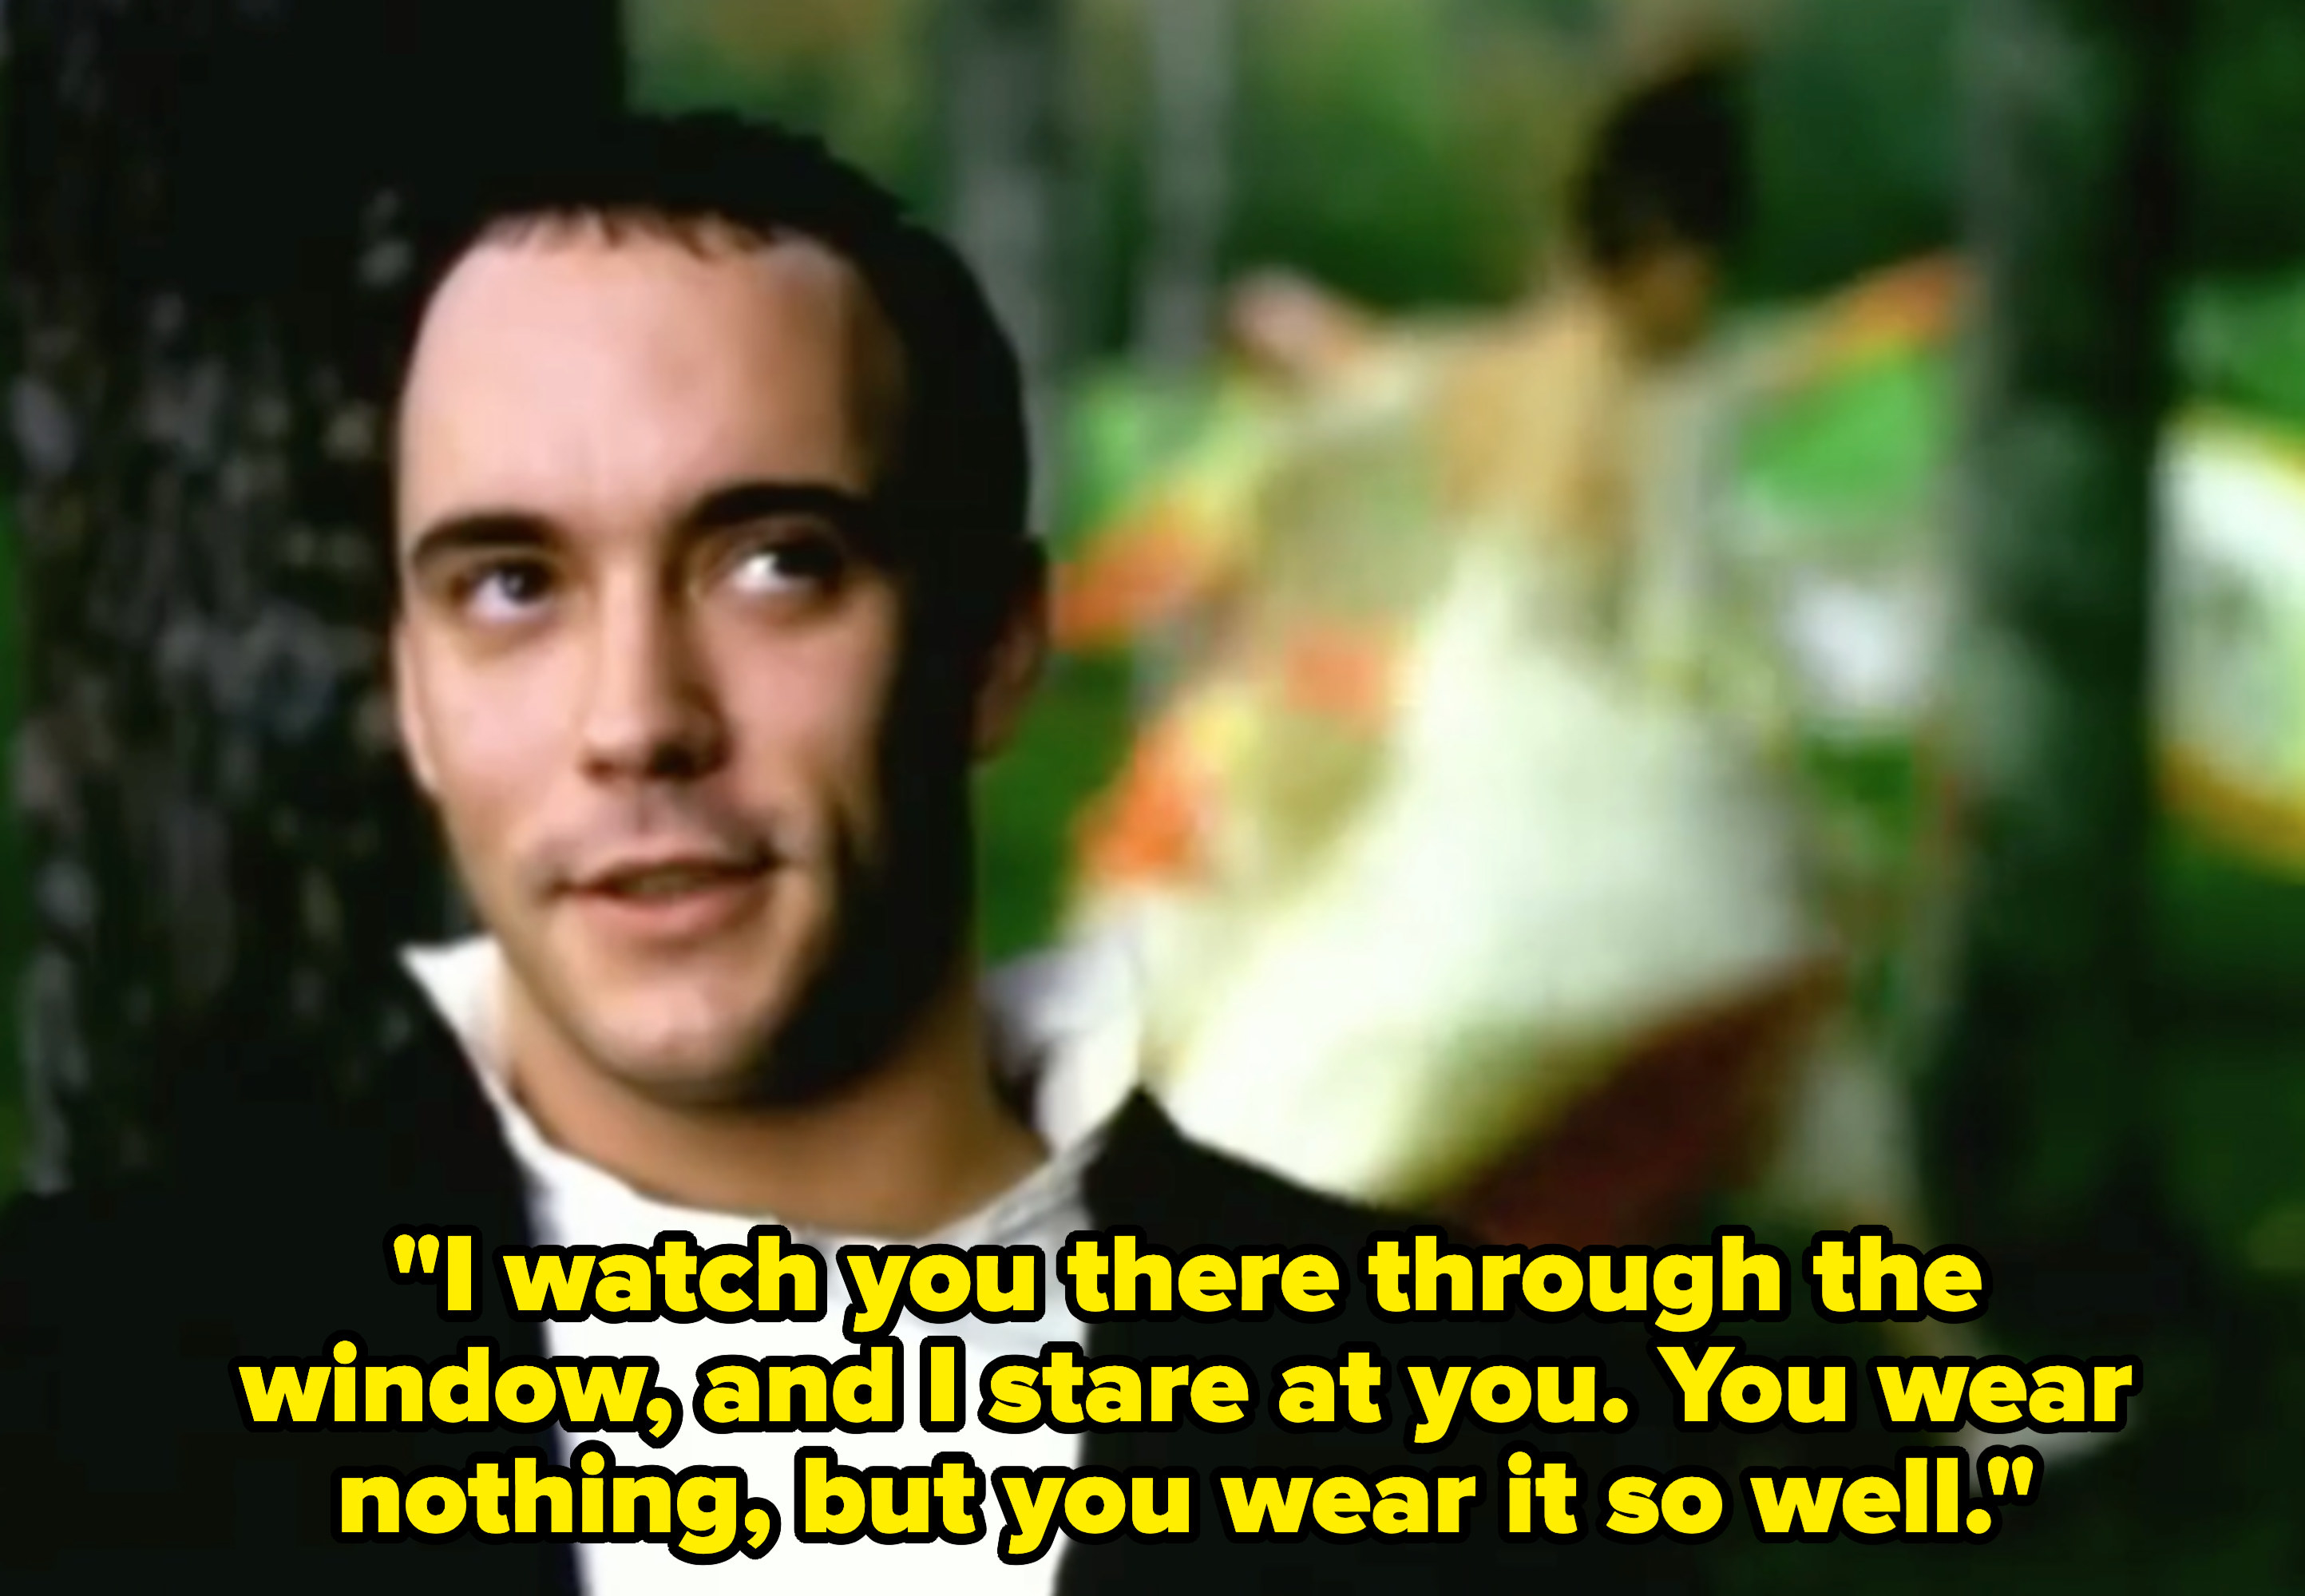 """Dave Matthews Band singing: """"I watch you there through the window, and I stare at you. You wear nothing, but you wear it so well"""""""